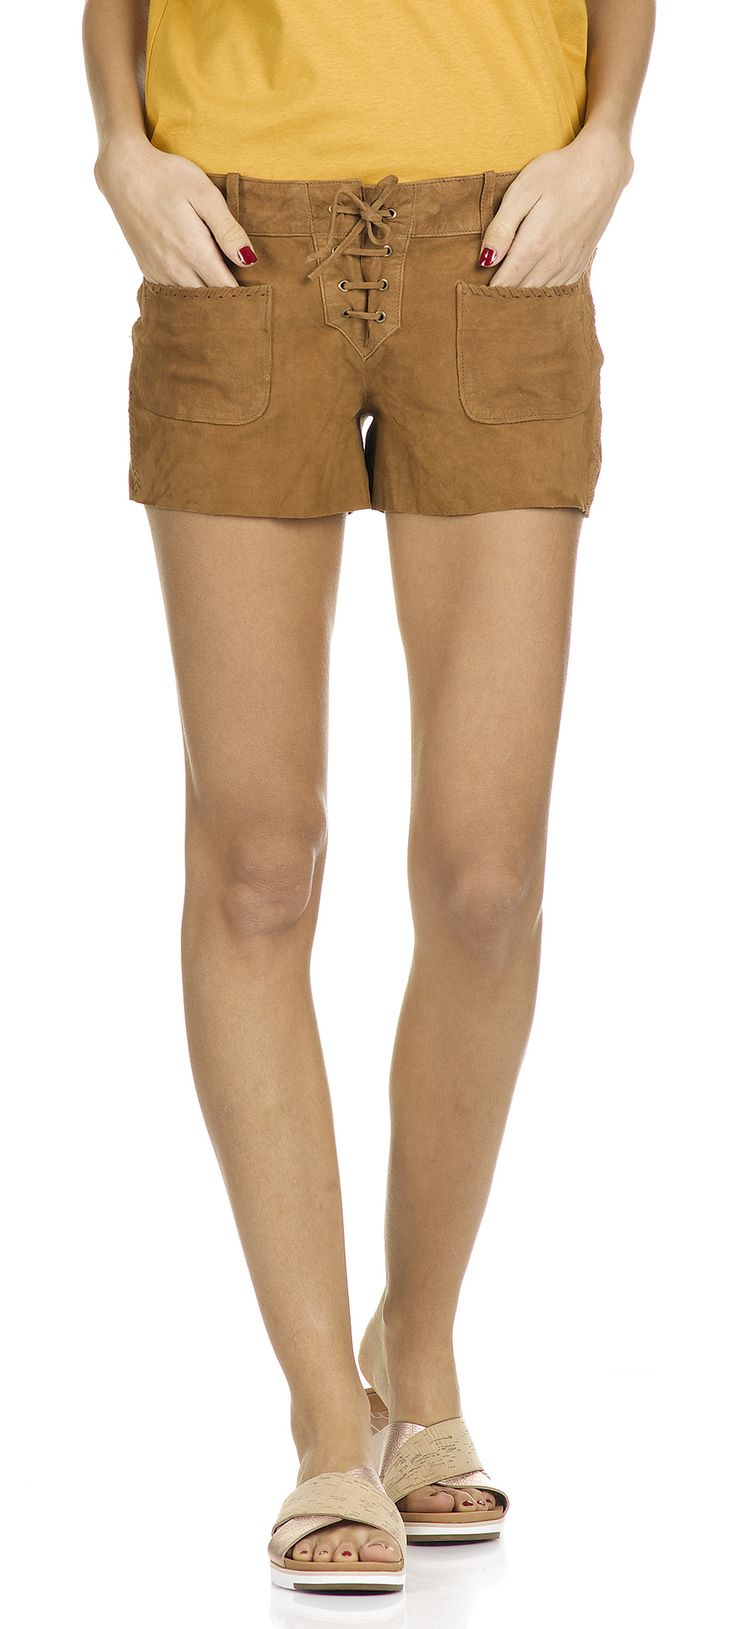 Short Prince de Galles Carreaux marron short femme daim 78c6eba16a5